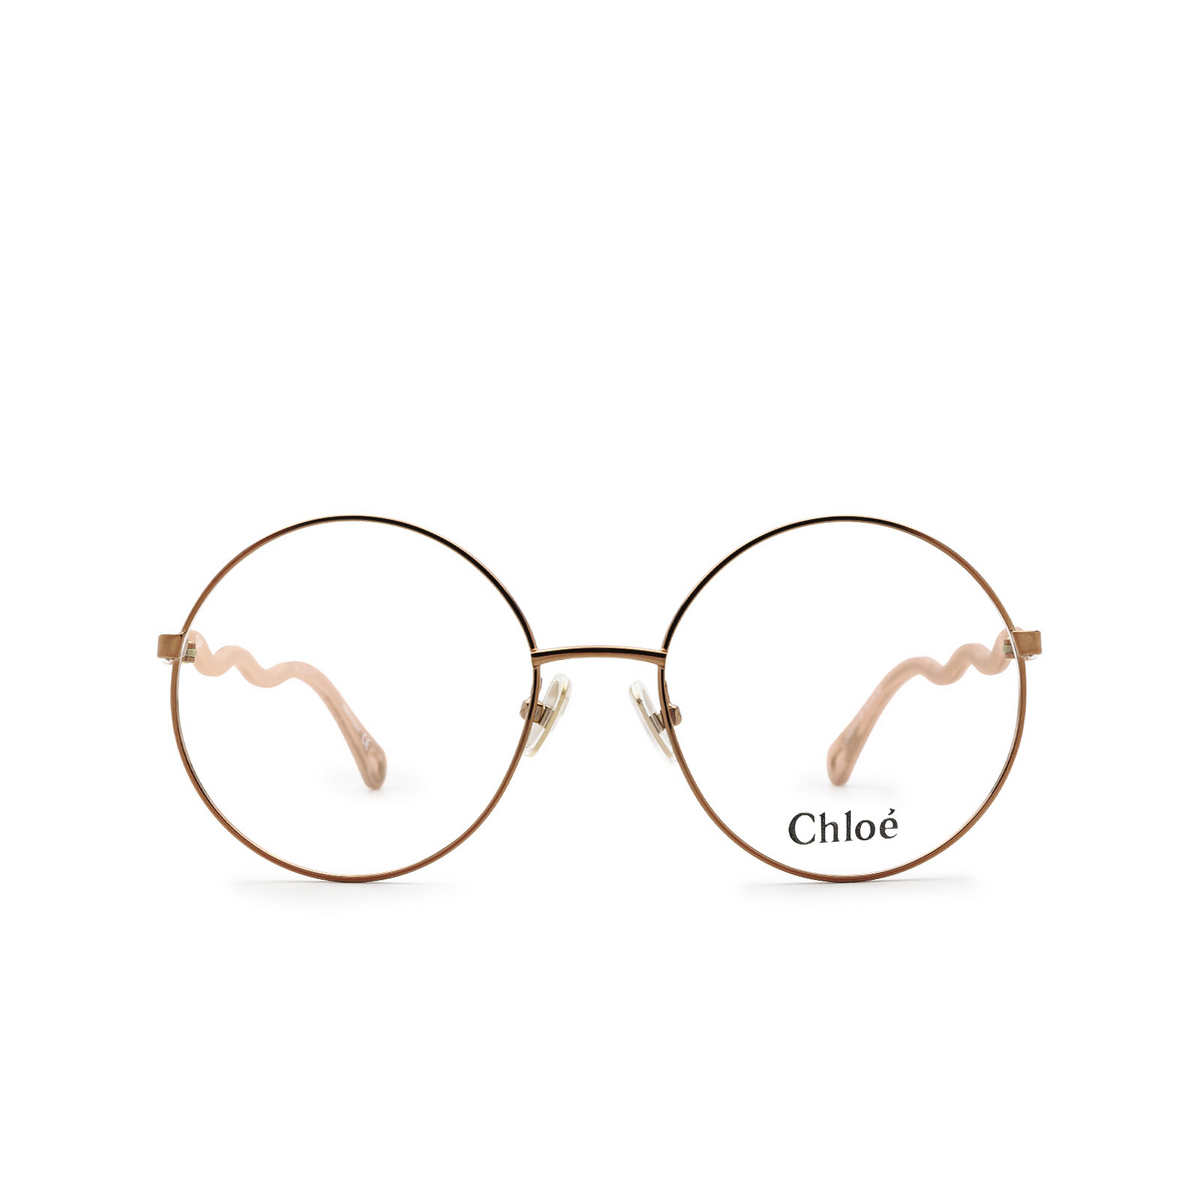 Chloé® Round Eyeglasses: CH0057O color Pink 001 - front view.